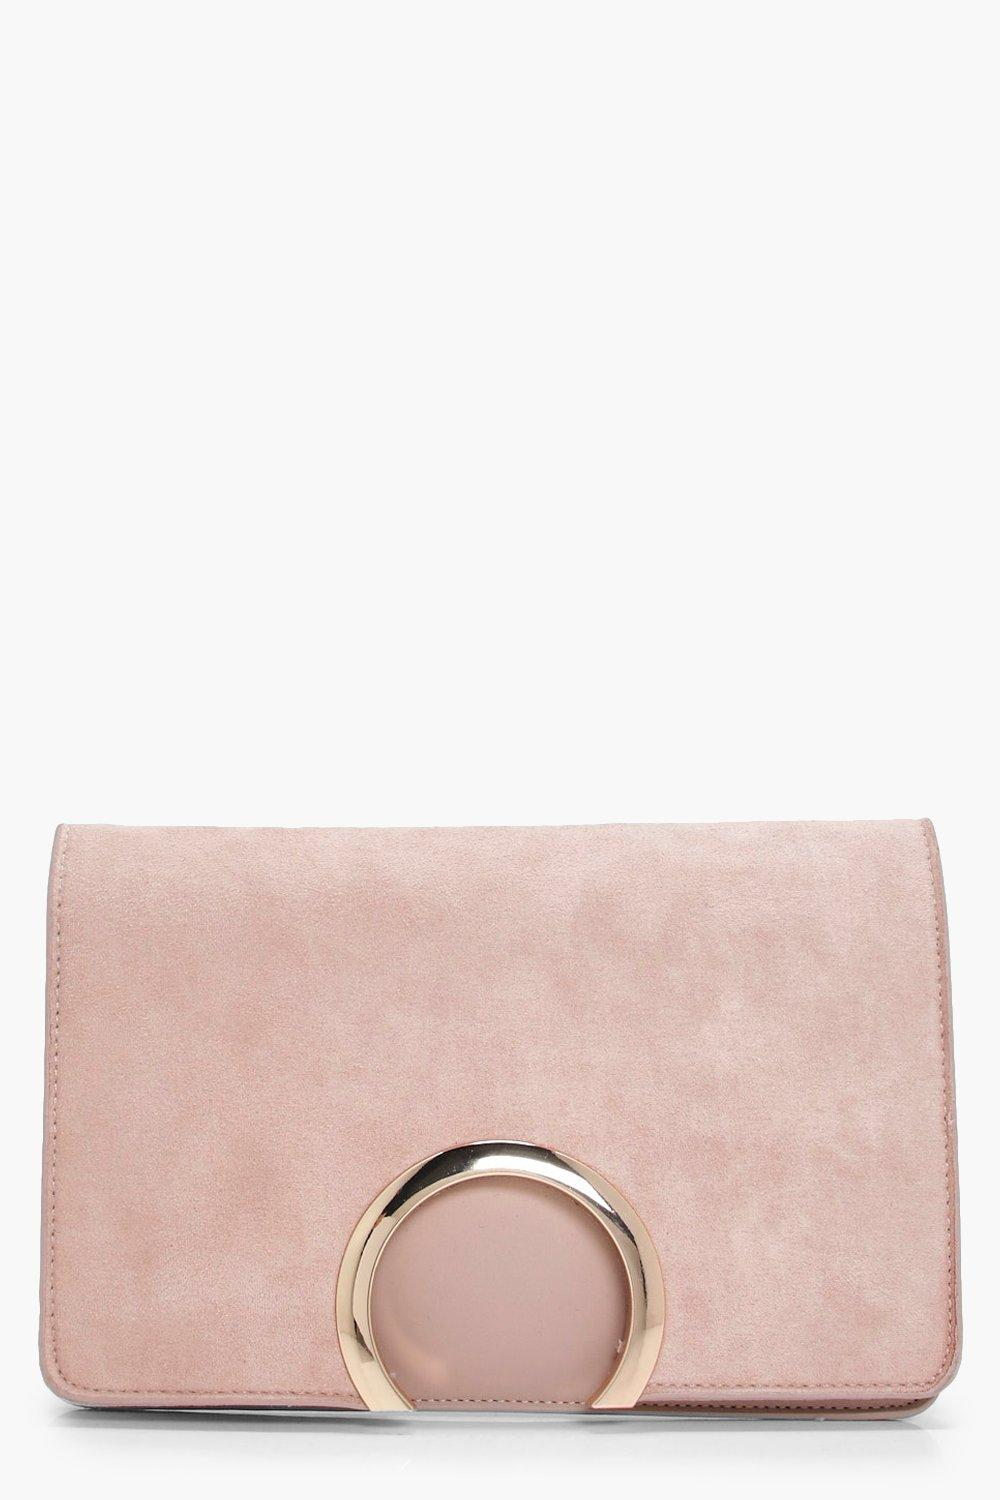 Metal Circle Suedette And PU Mix Clutch - taupe -